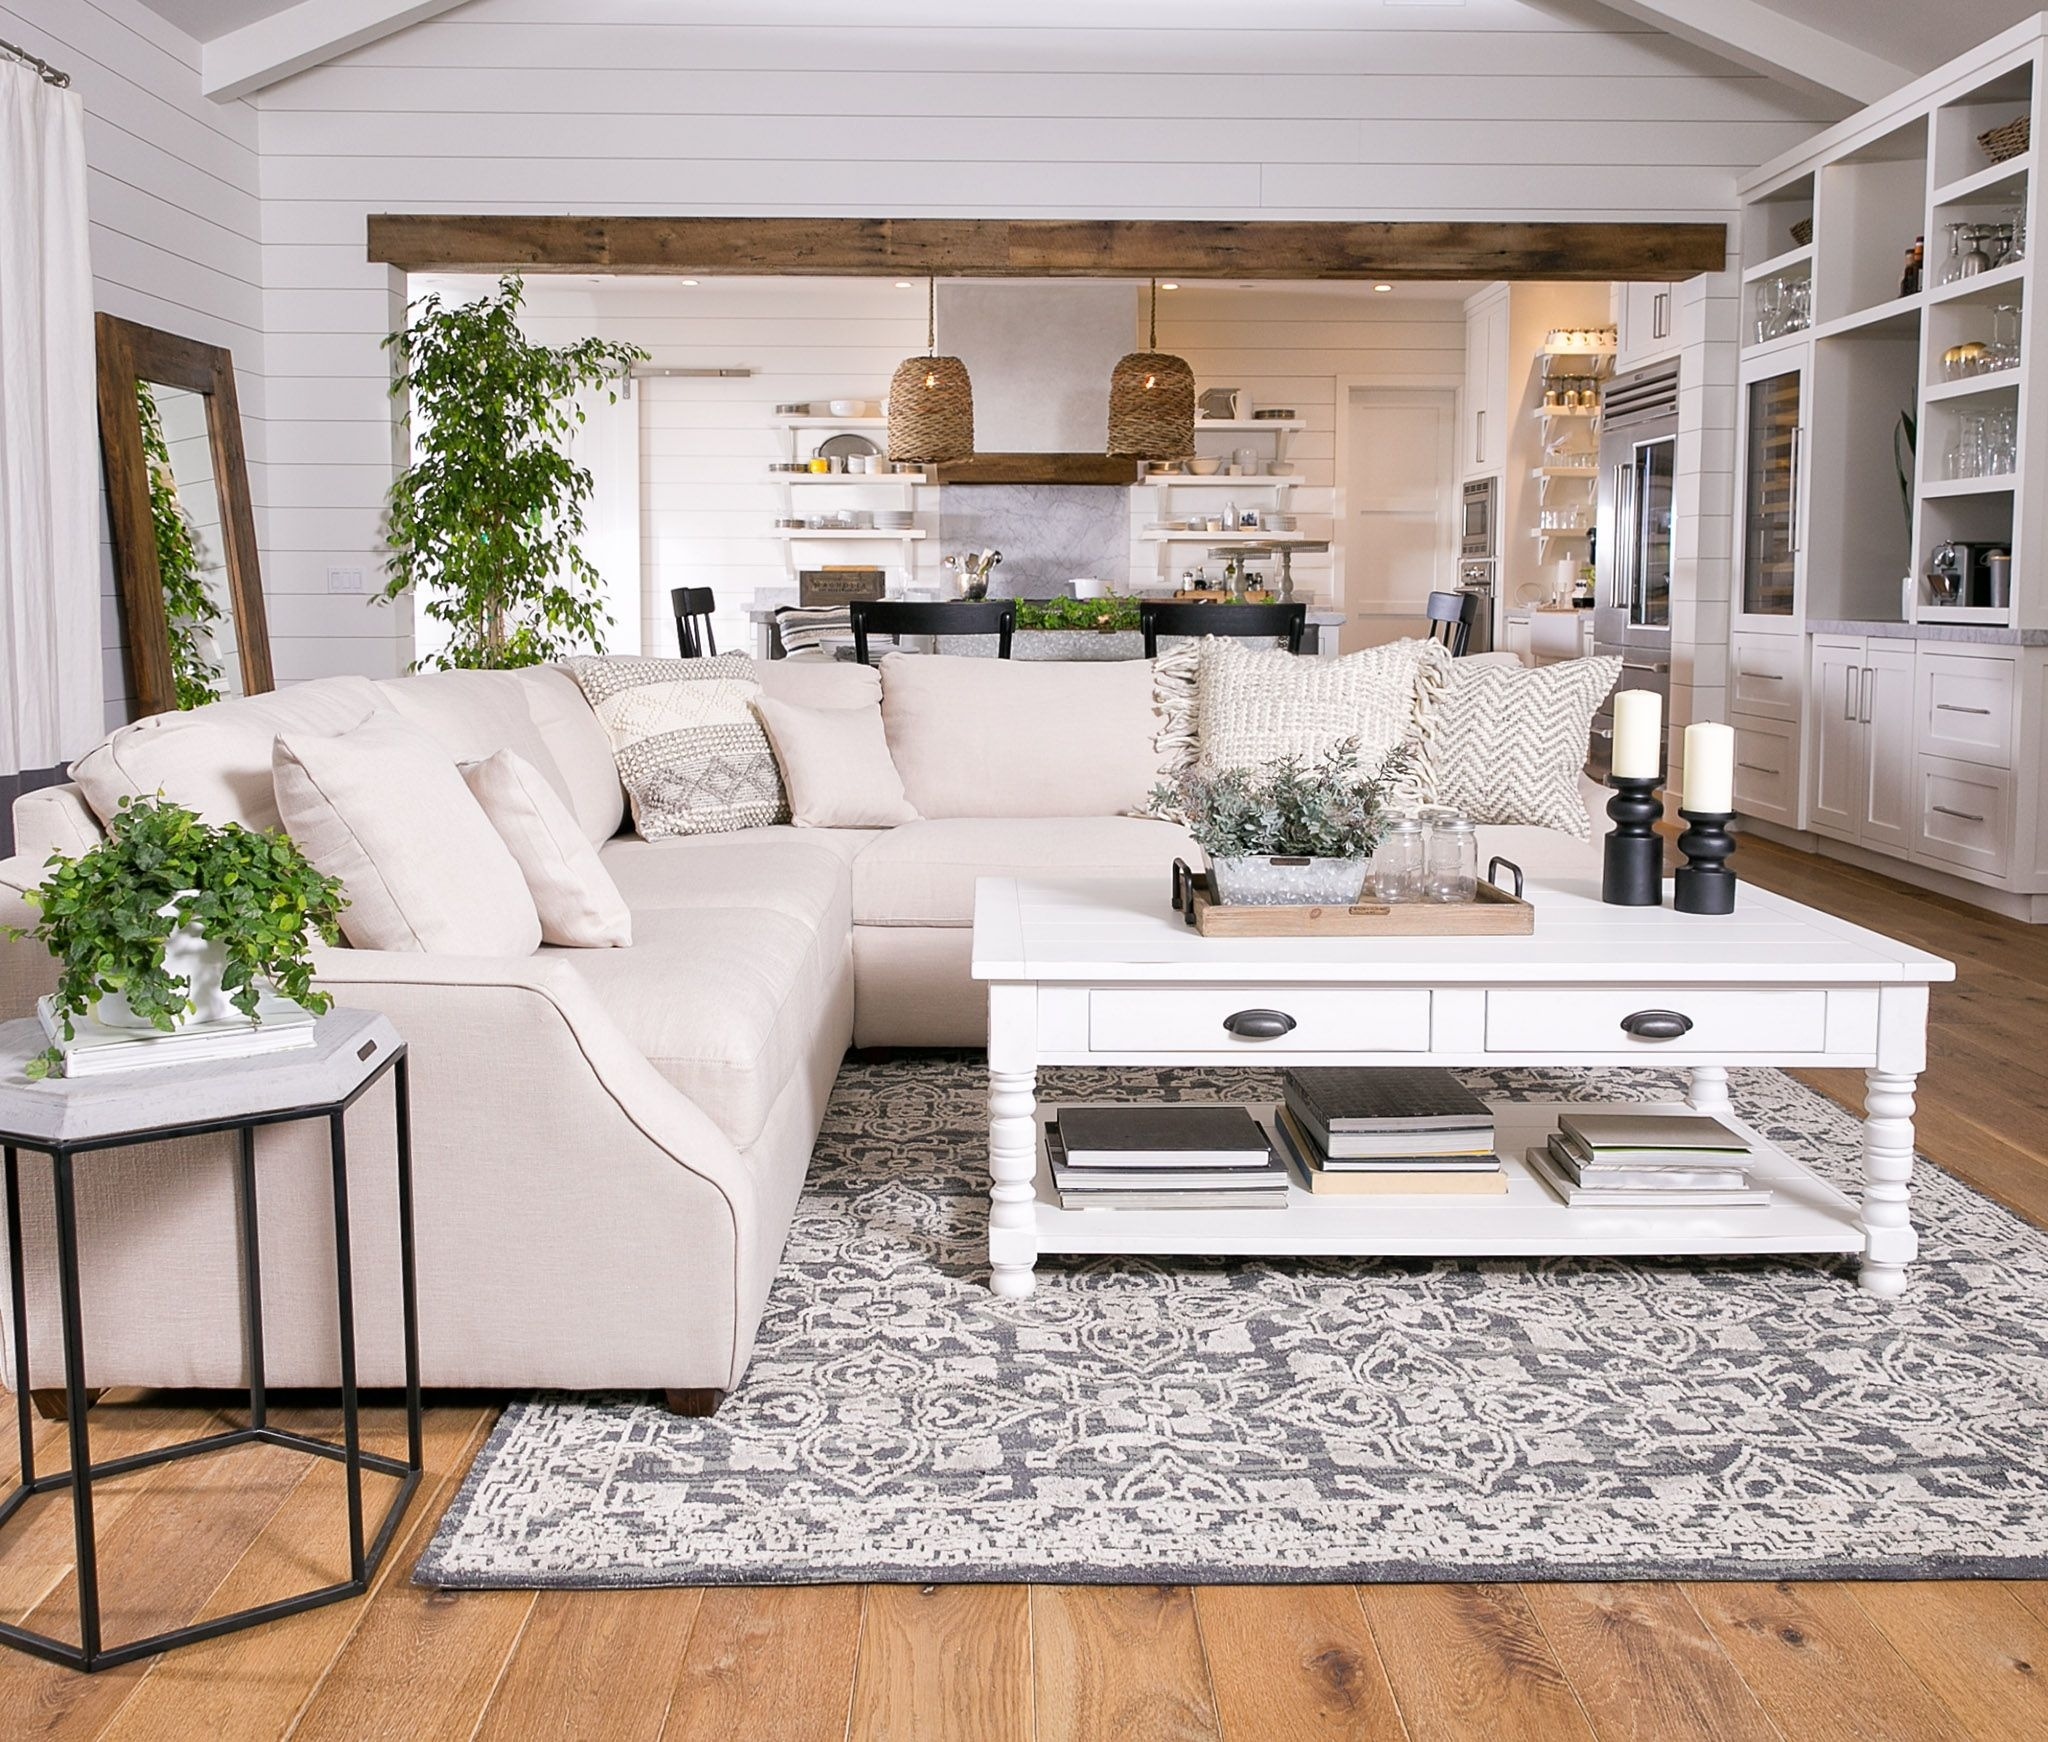 Magnolia Home Homestead 3 Piece Sectionaljoanna Gaines Regarding Magnolia Home Homestead 3 Piece Sectionals By Joanna Gaines (View 11 of 30)